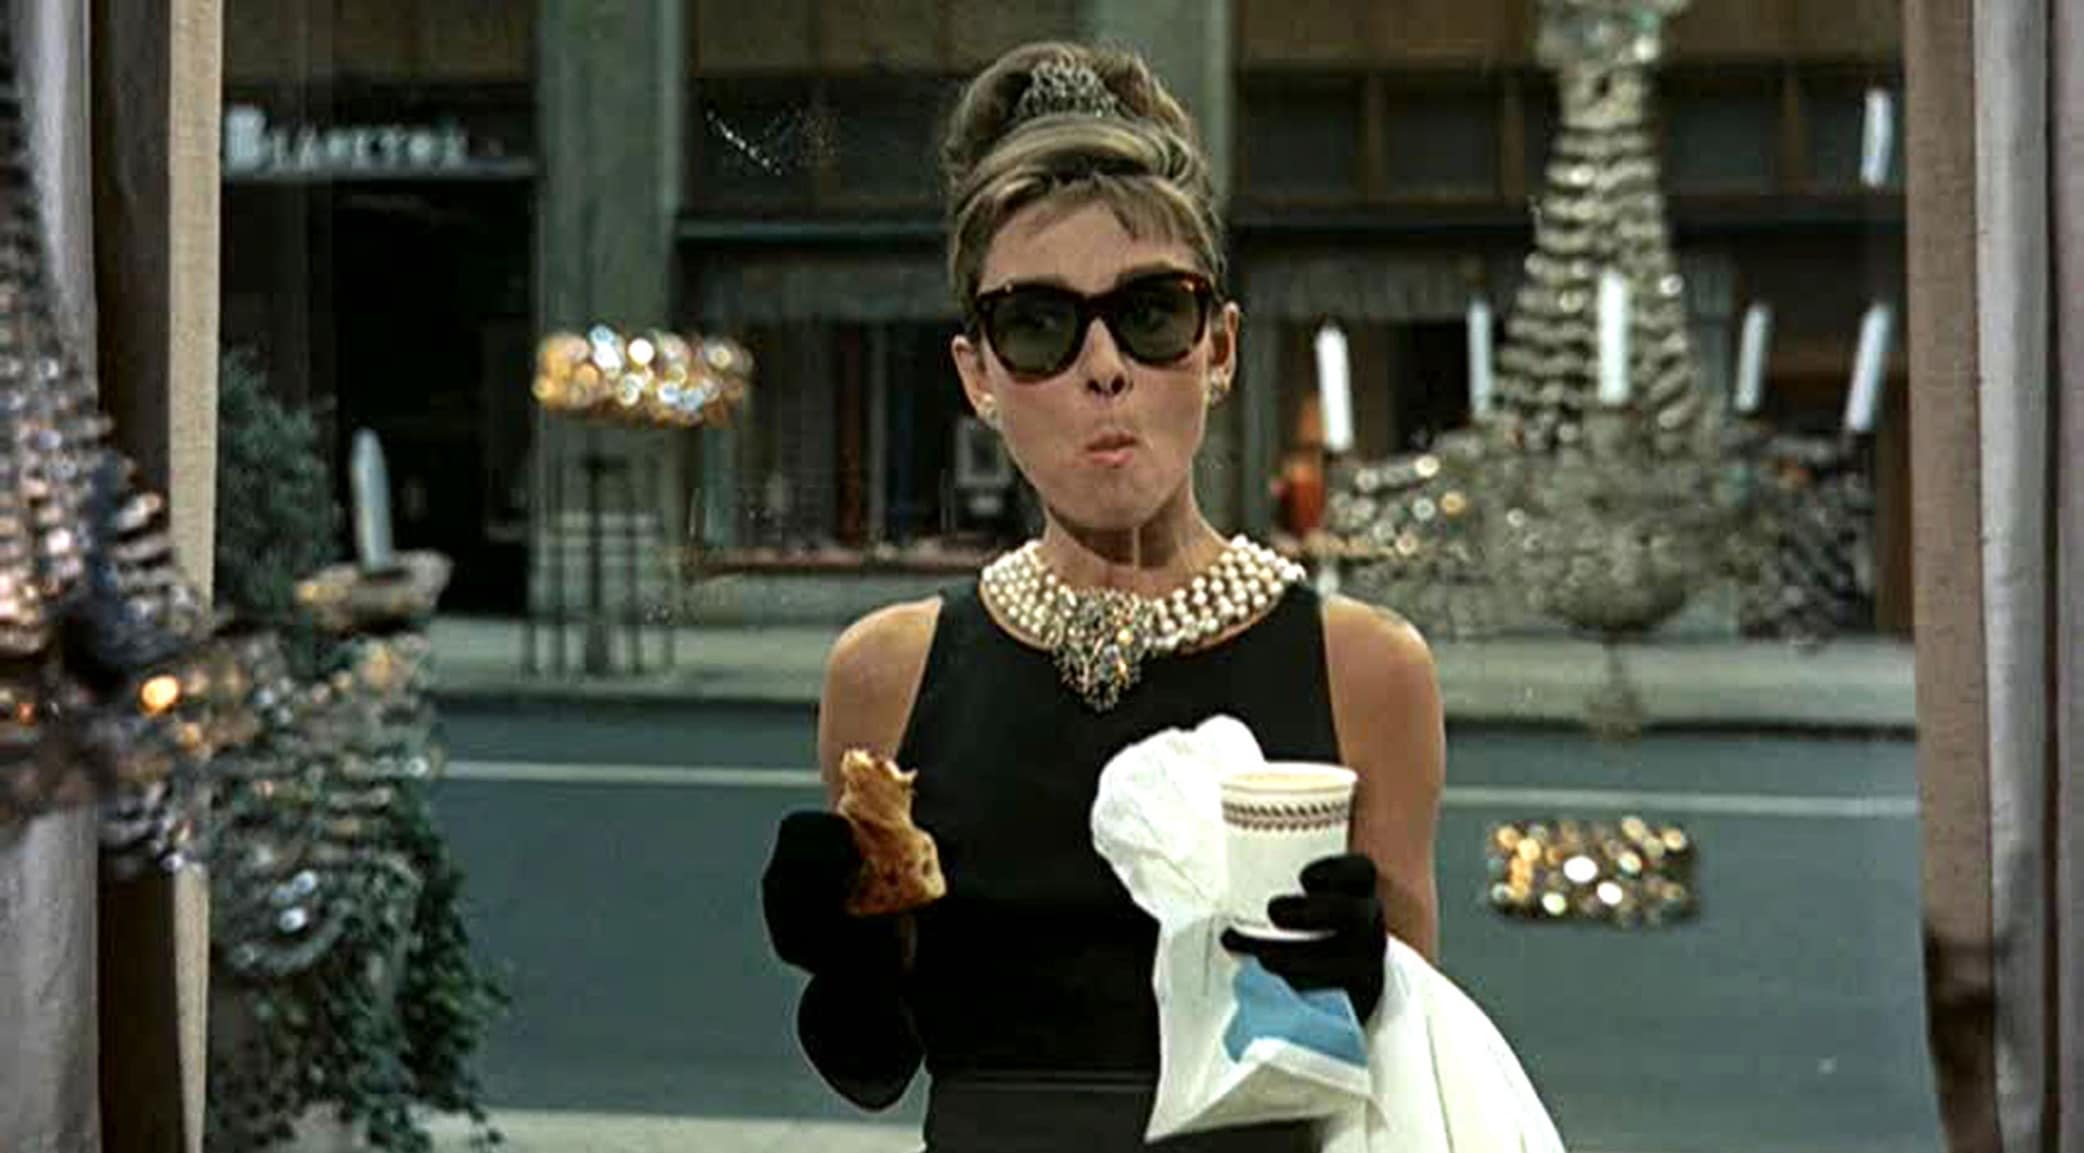 Iconic black dress designed by Hubert de Givenchy and worn by Audrey Hepburn in the opening of the 1961 romantic comedy film Breakfast at Tiffany's